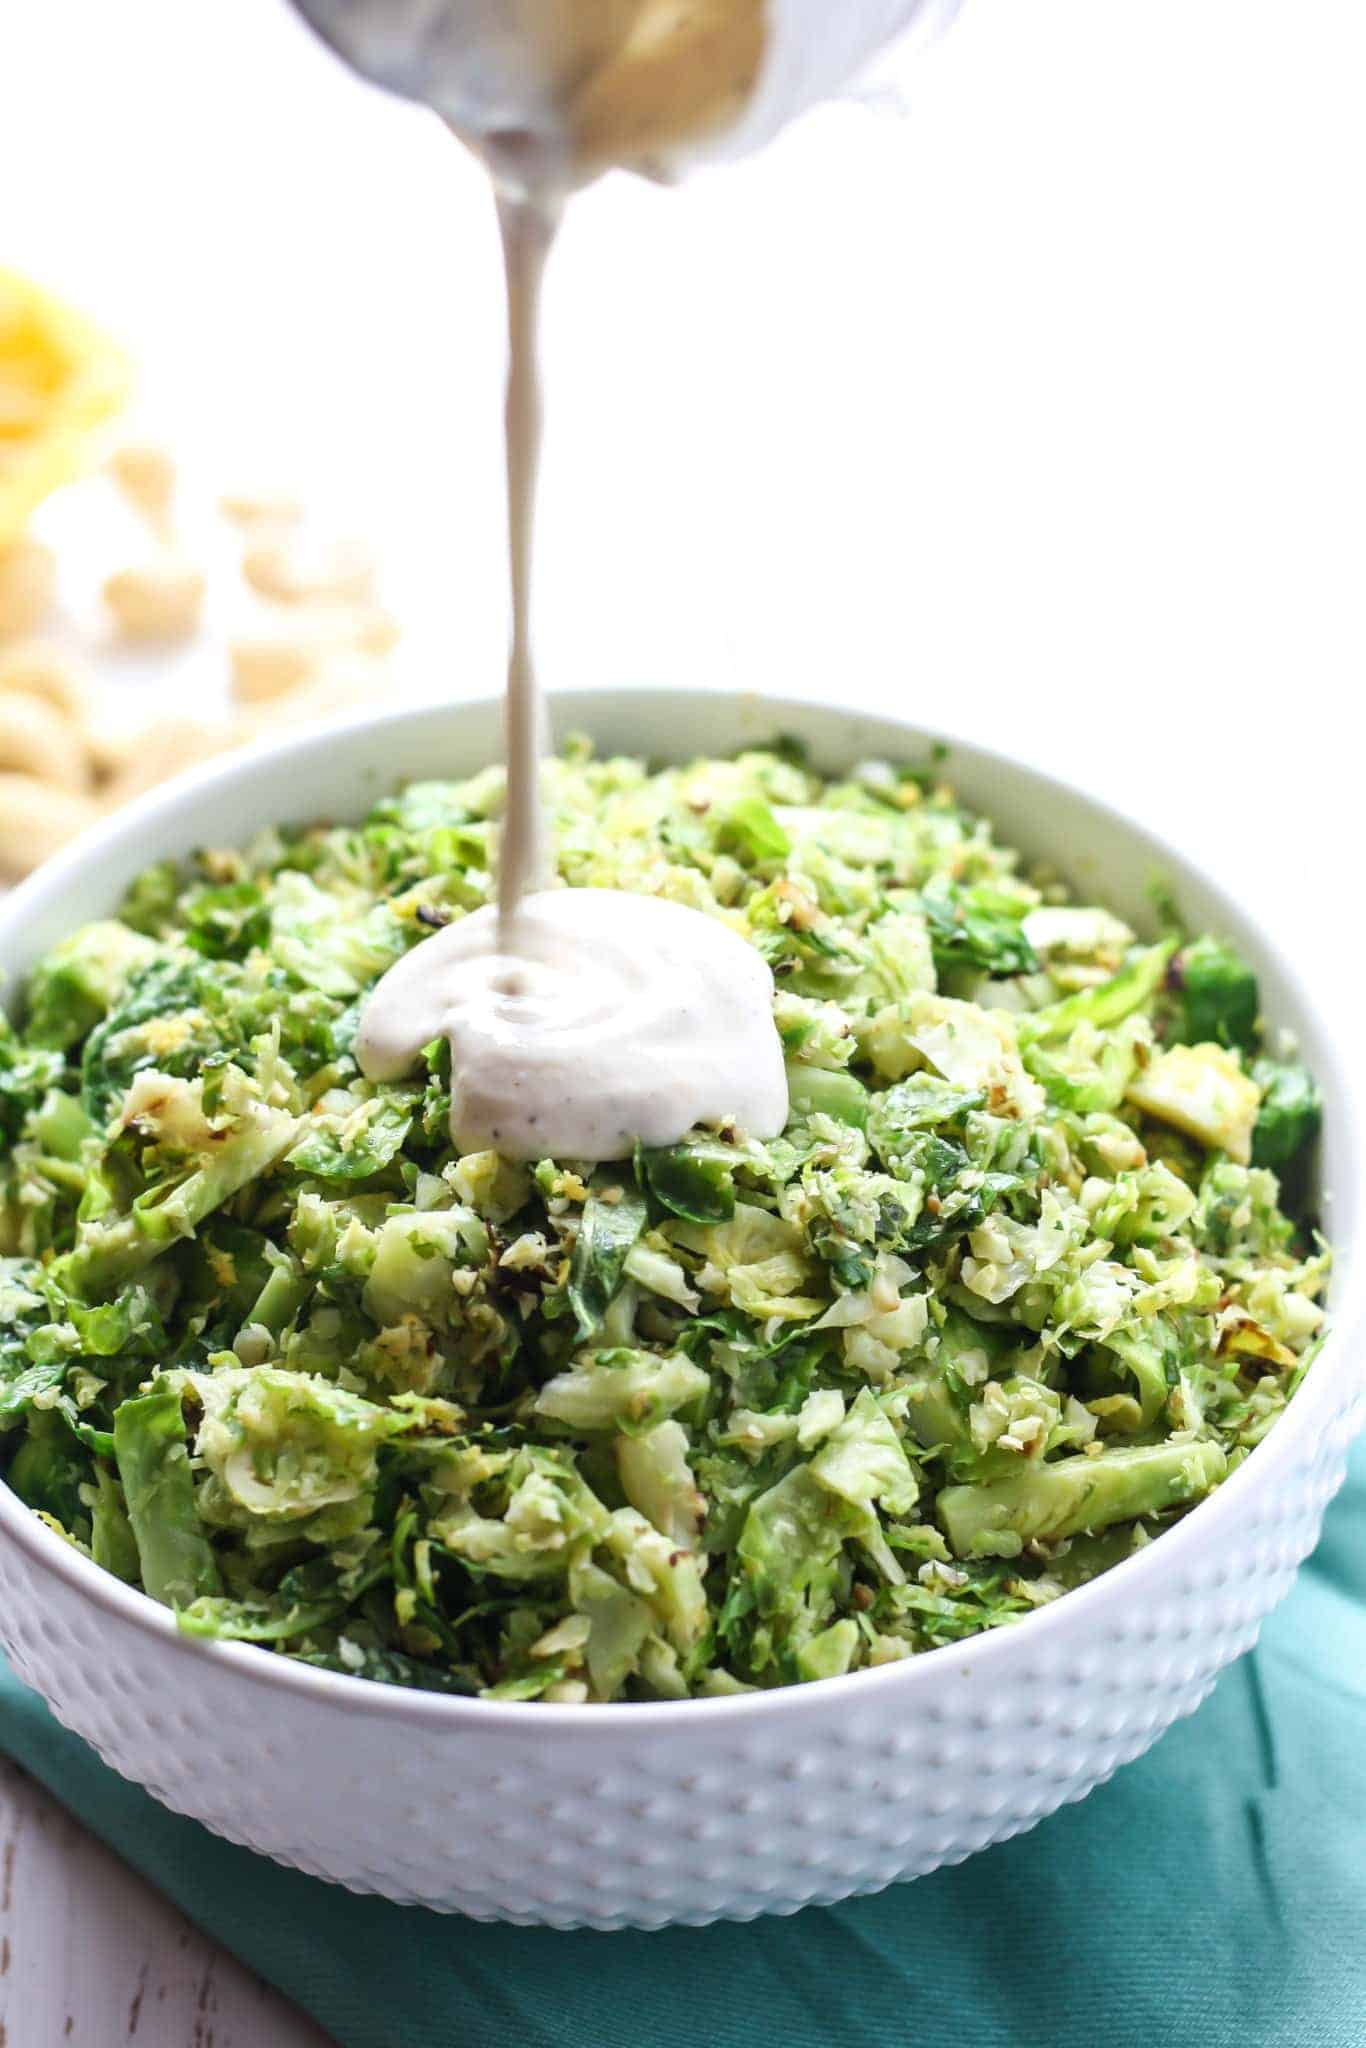 shredded brussels sprouts salad with lemon pepper cashew dressing being poured in white bowl